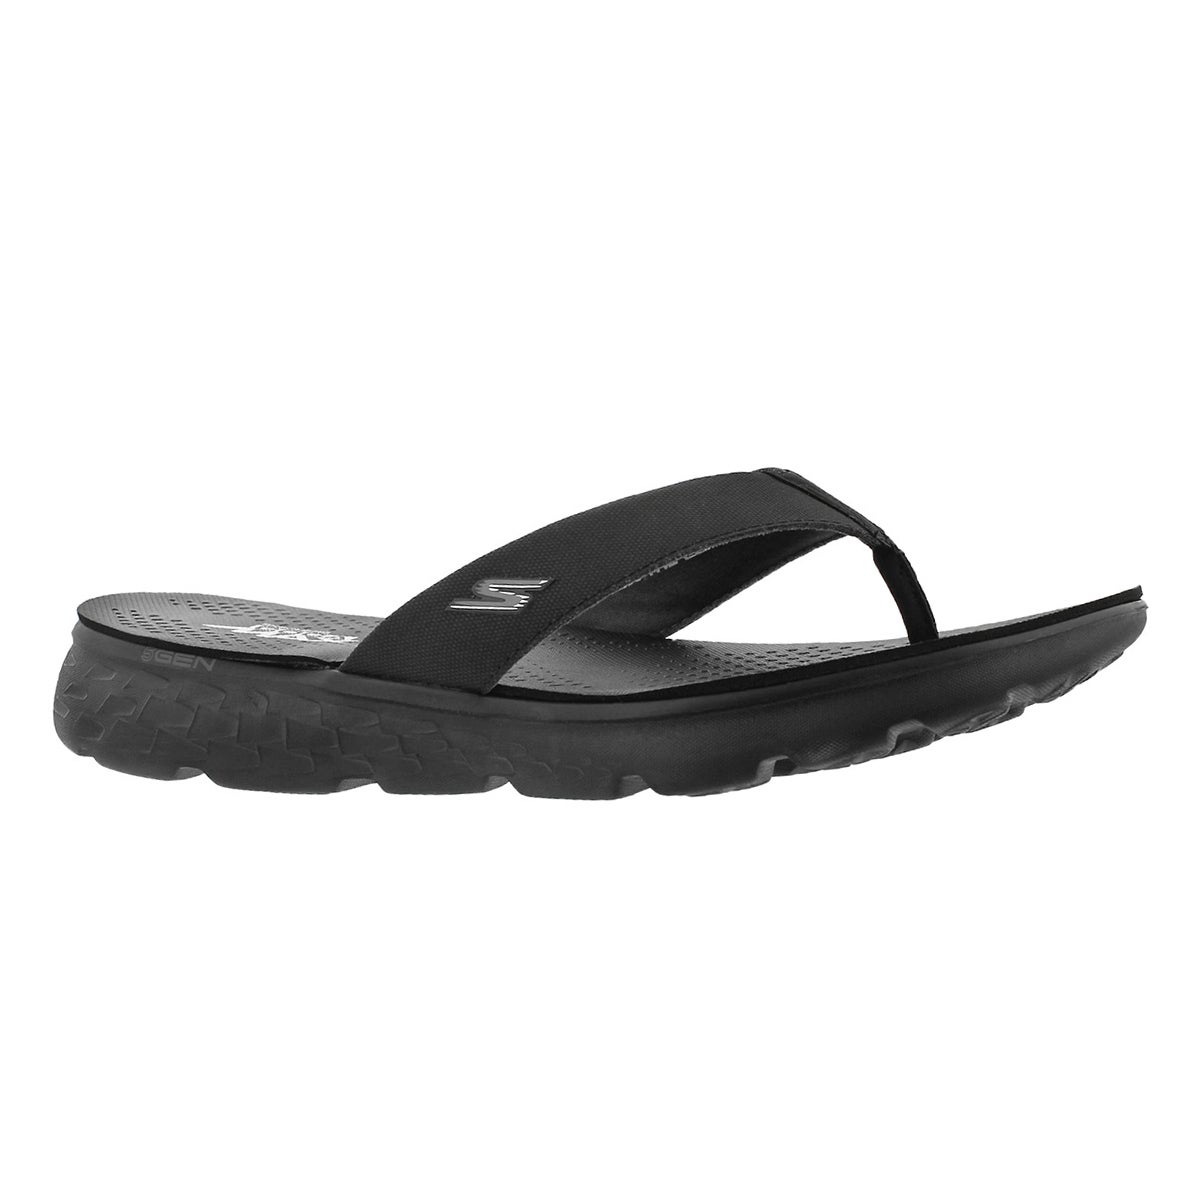 Men's ON-THE-GO 400 SHORE black flip flops